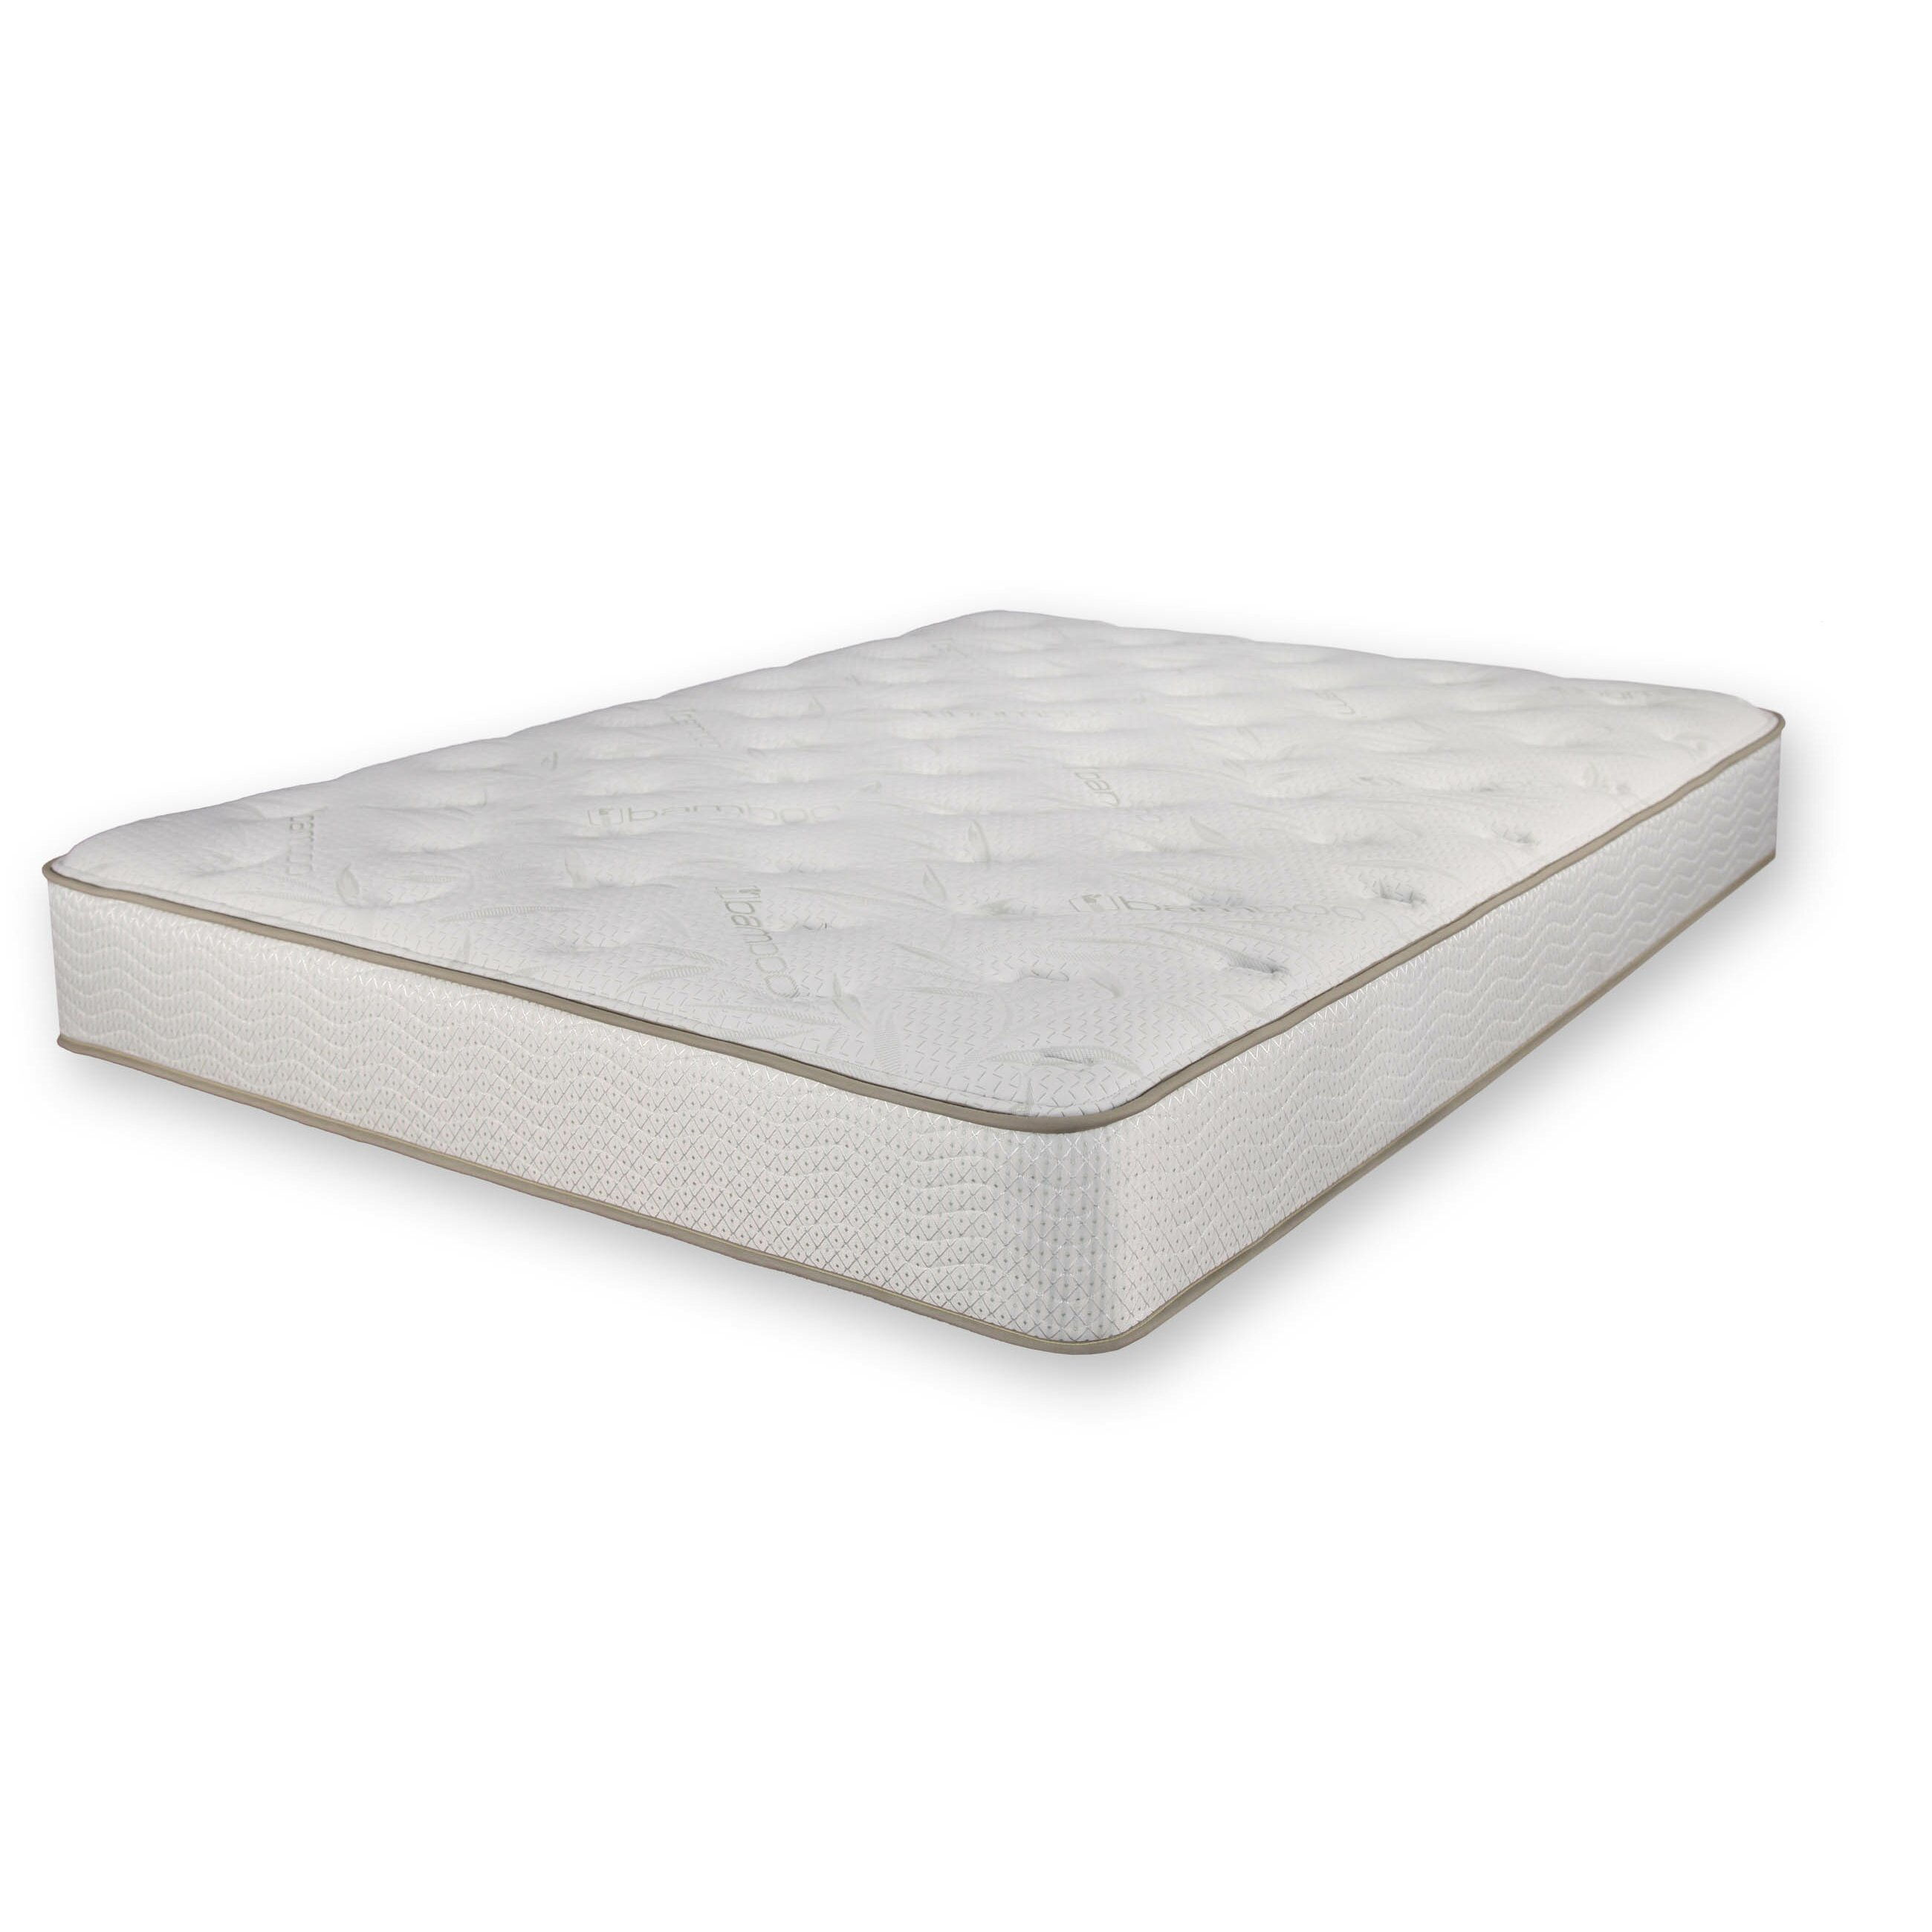 springs mattress latex bed pocket yatsan classic mattresses and nature shop